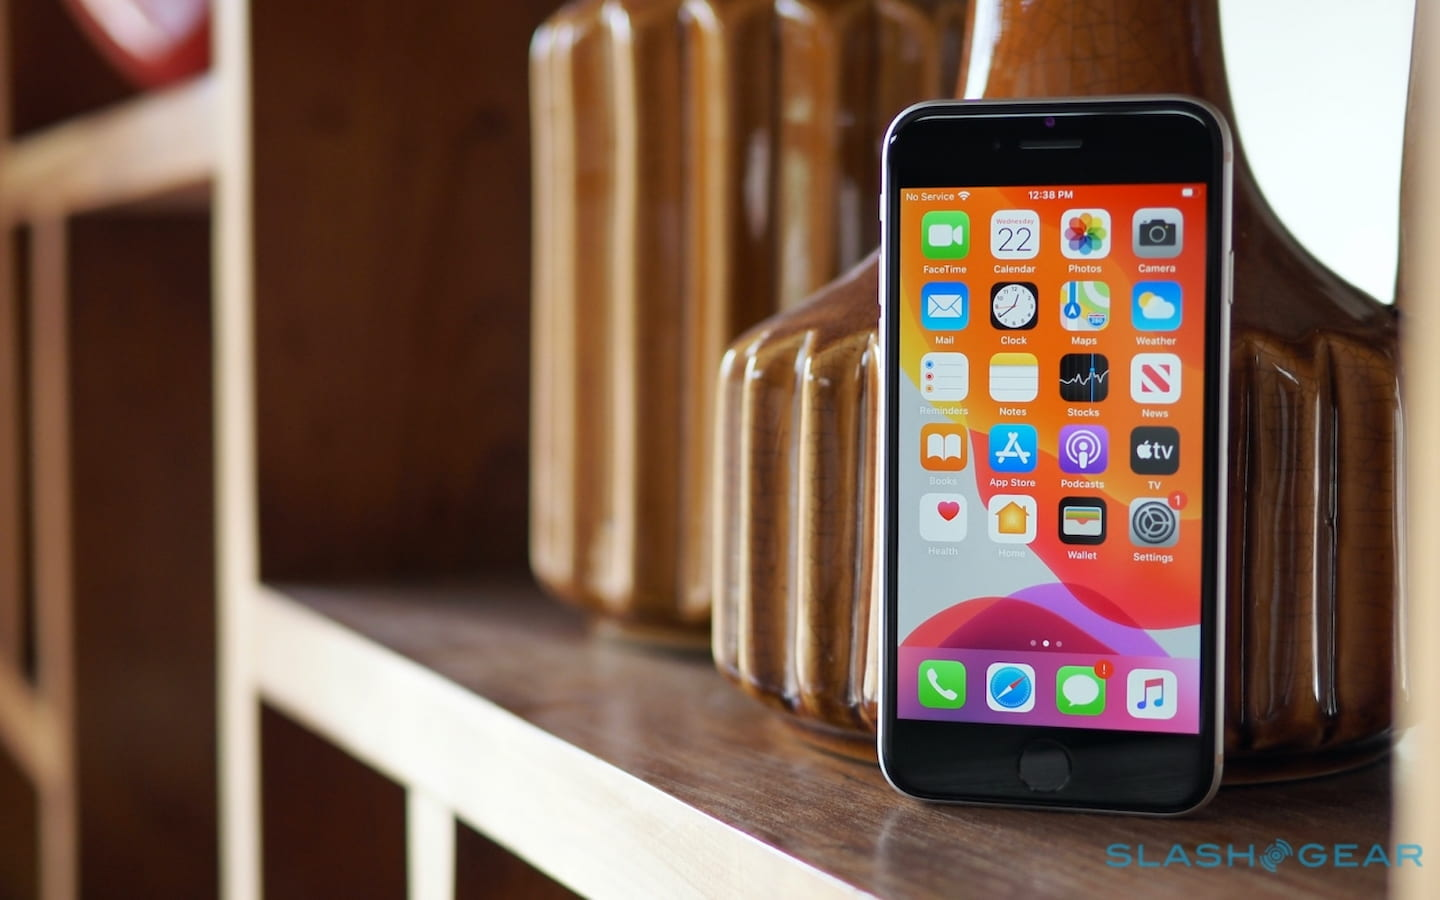 iPhone SE 3 could be the upgrade we've been hoping for in 2022